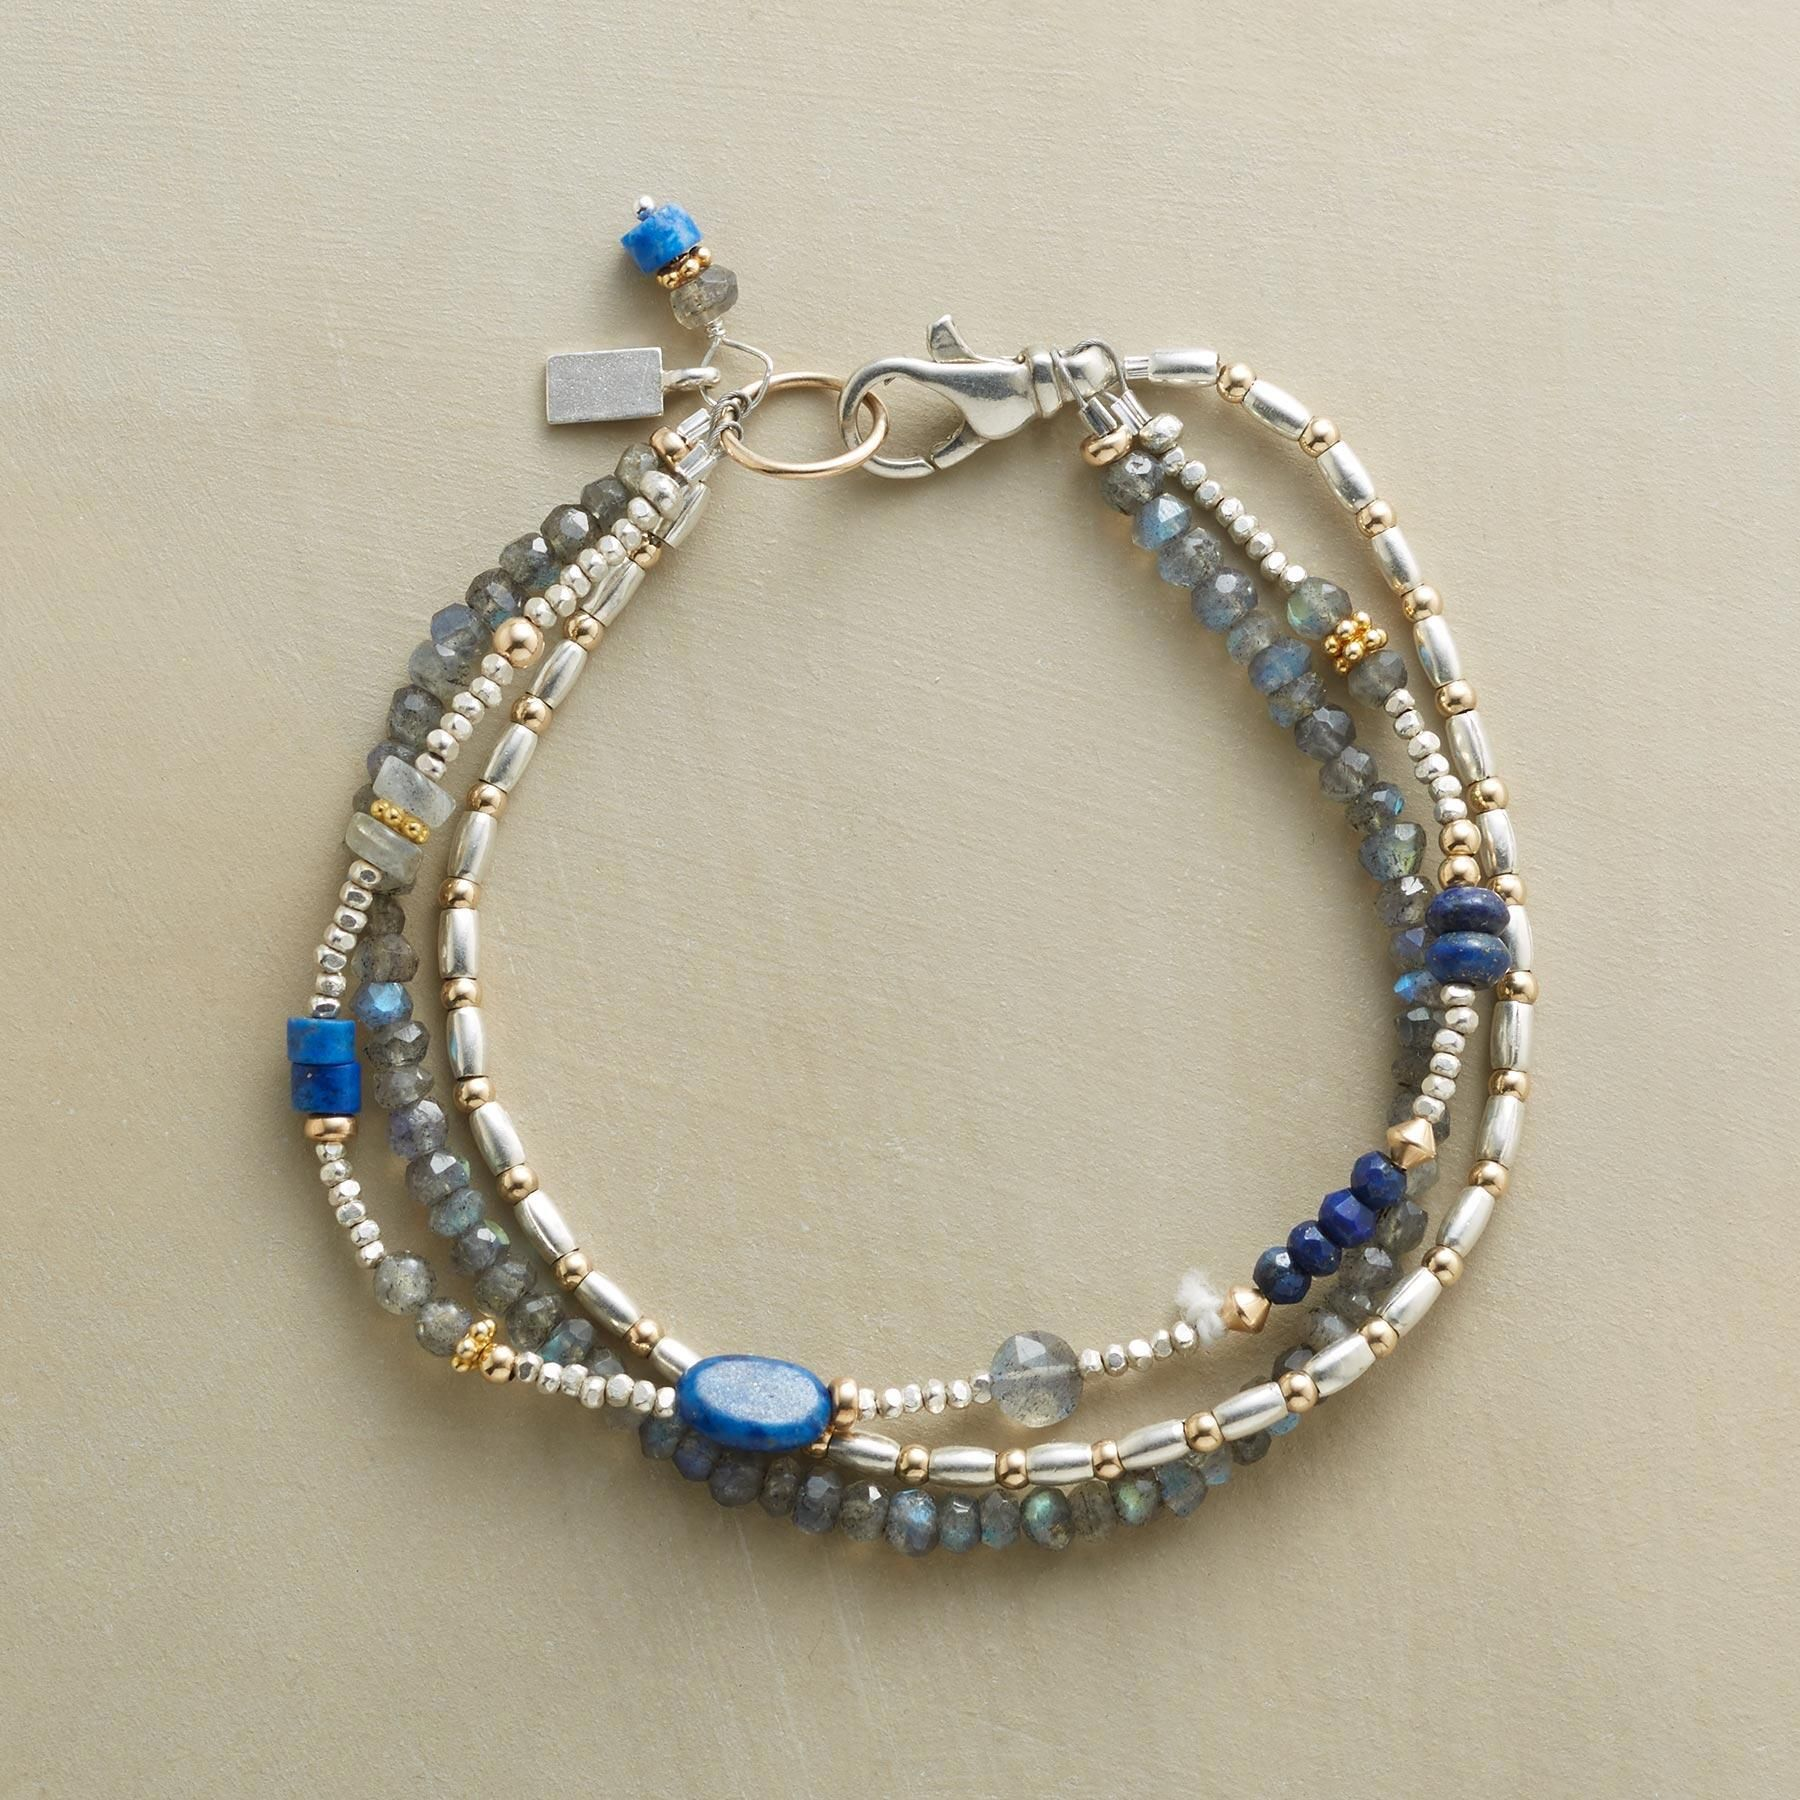 CONSTANCE BRACELET Wear this bracelet with your bestloved jeans